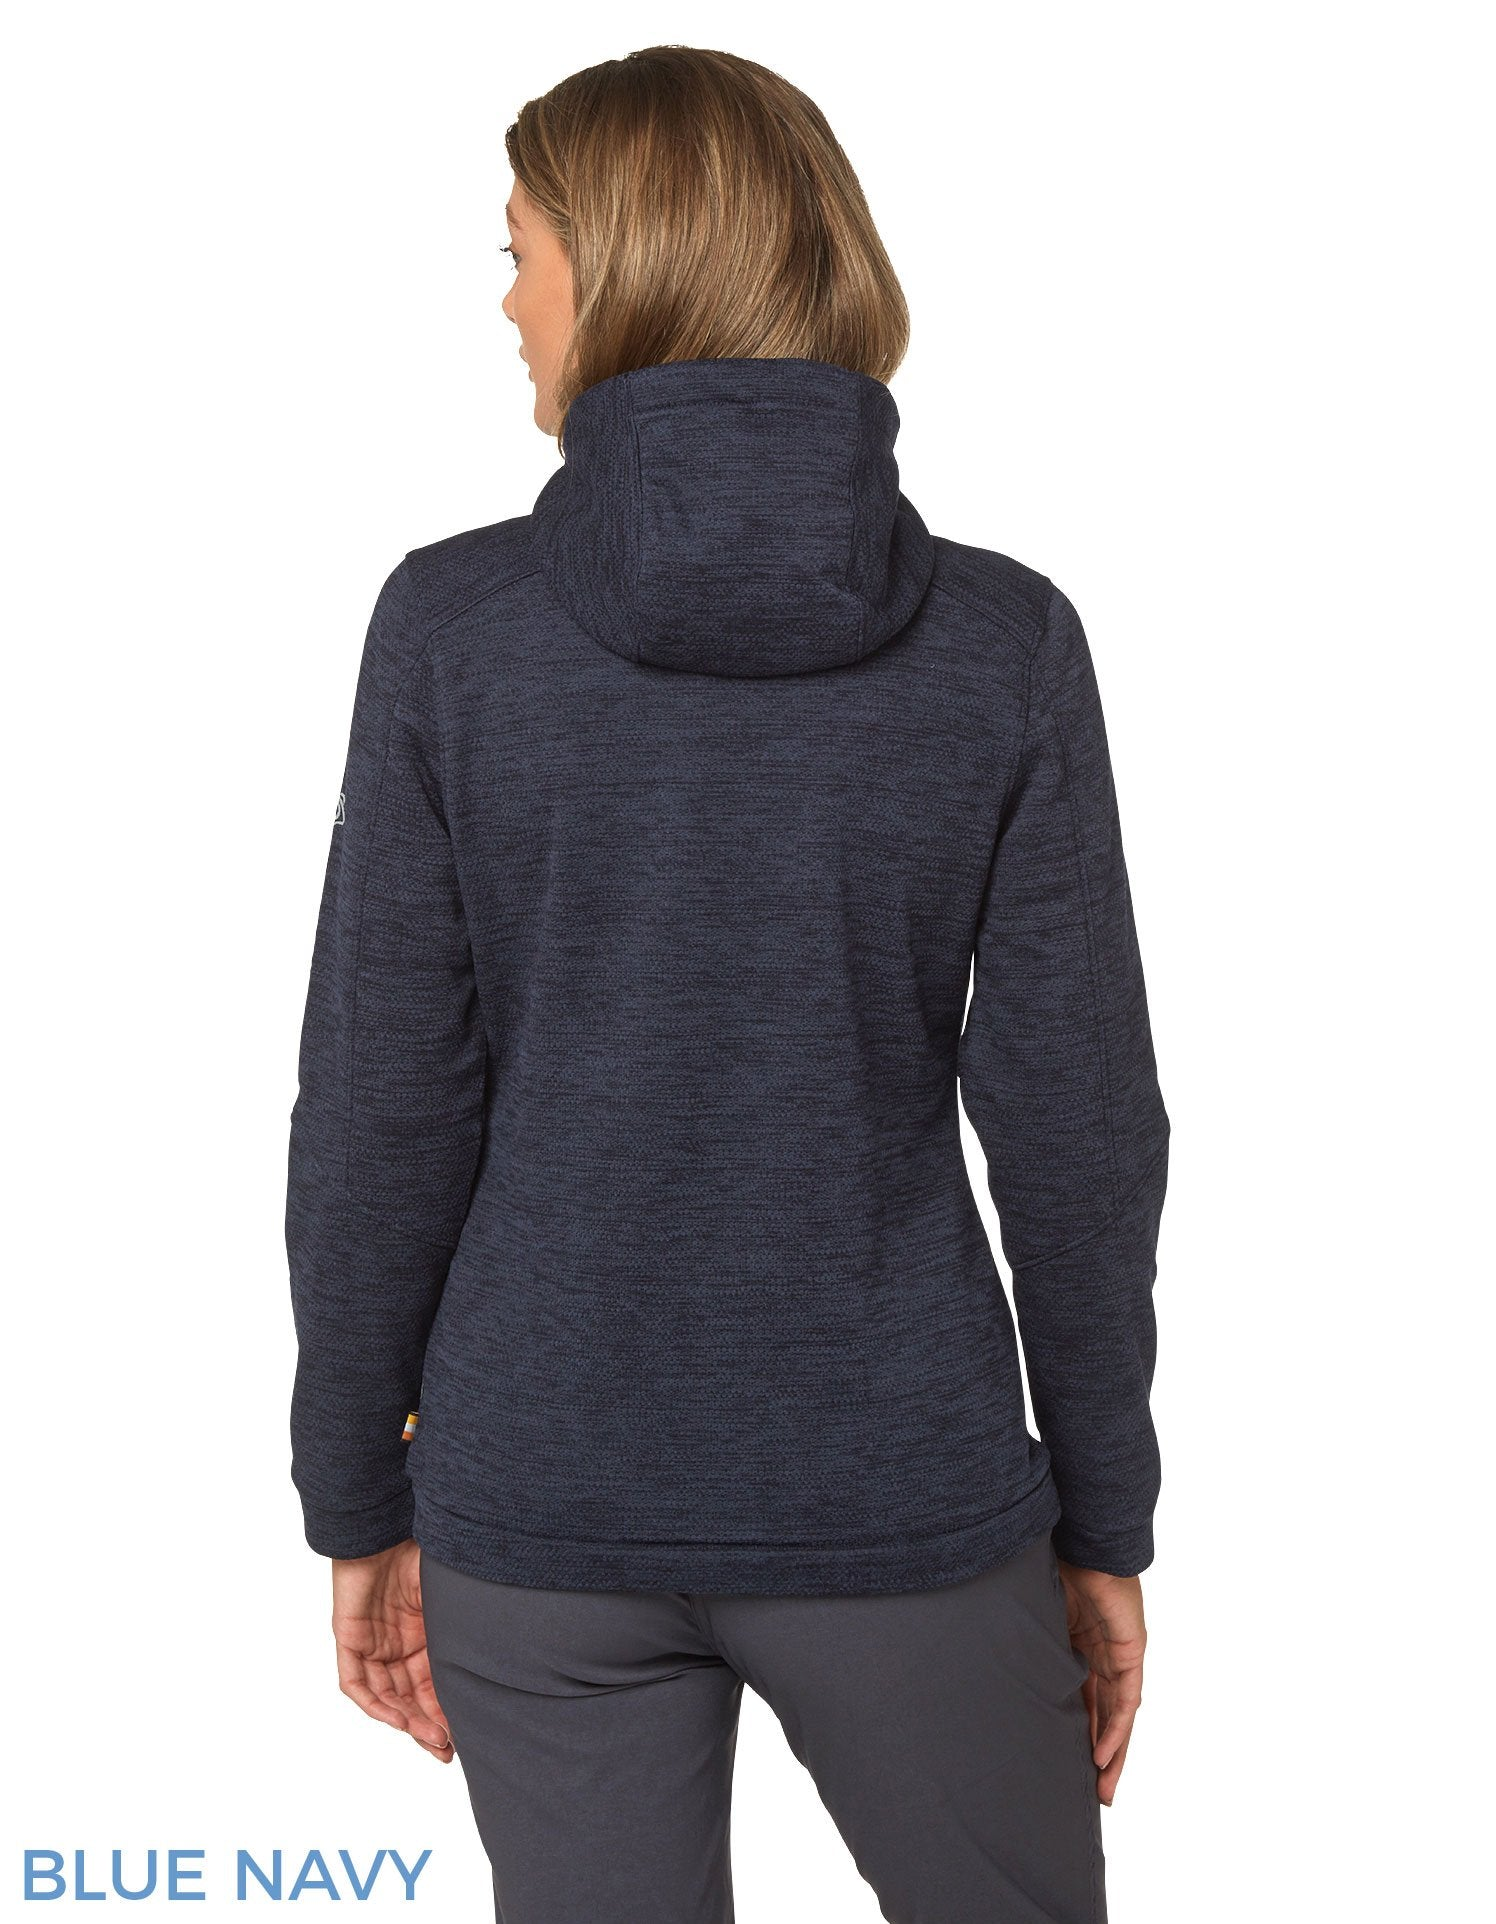 Back view Strata Fleece Hoody by Craghoppers